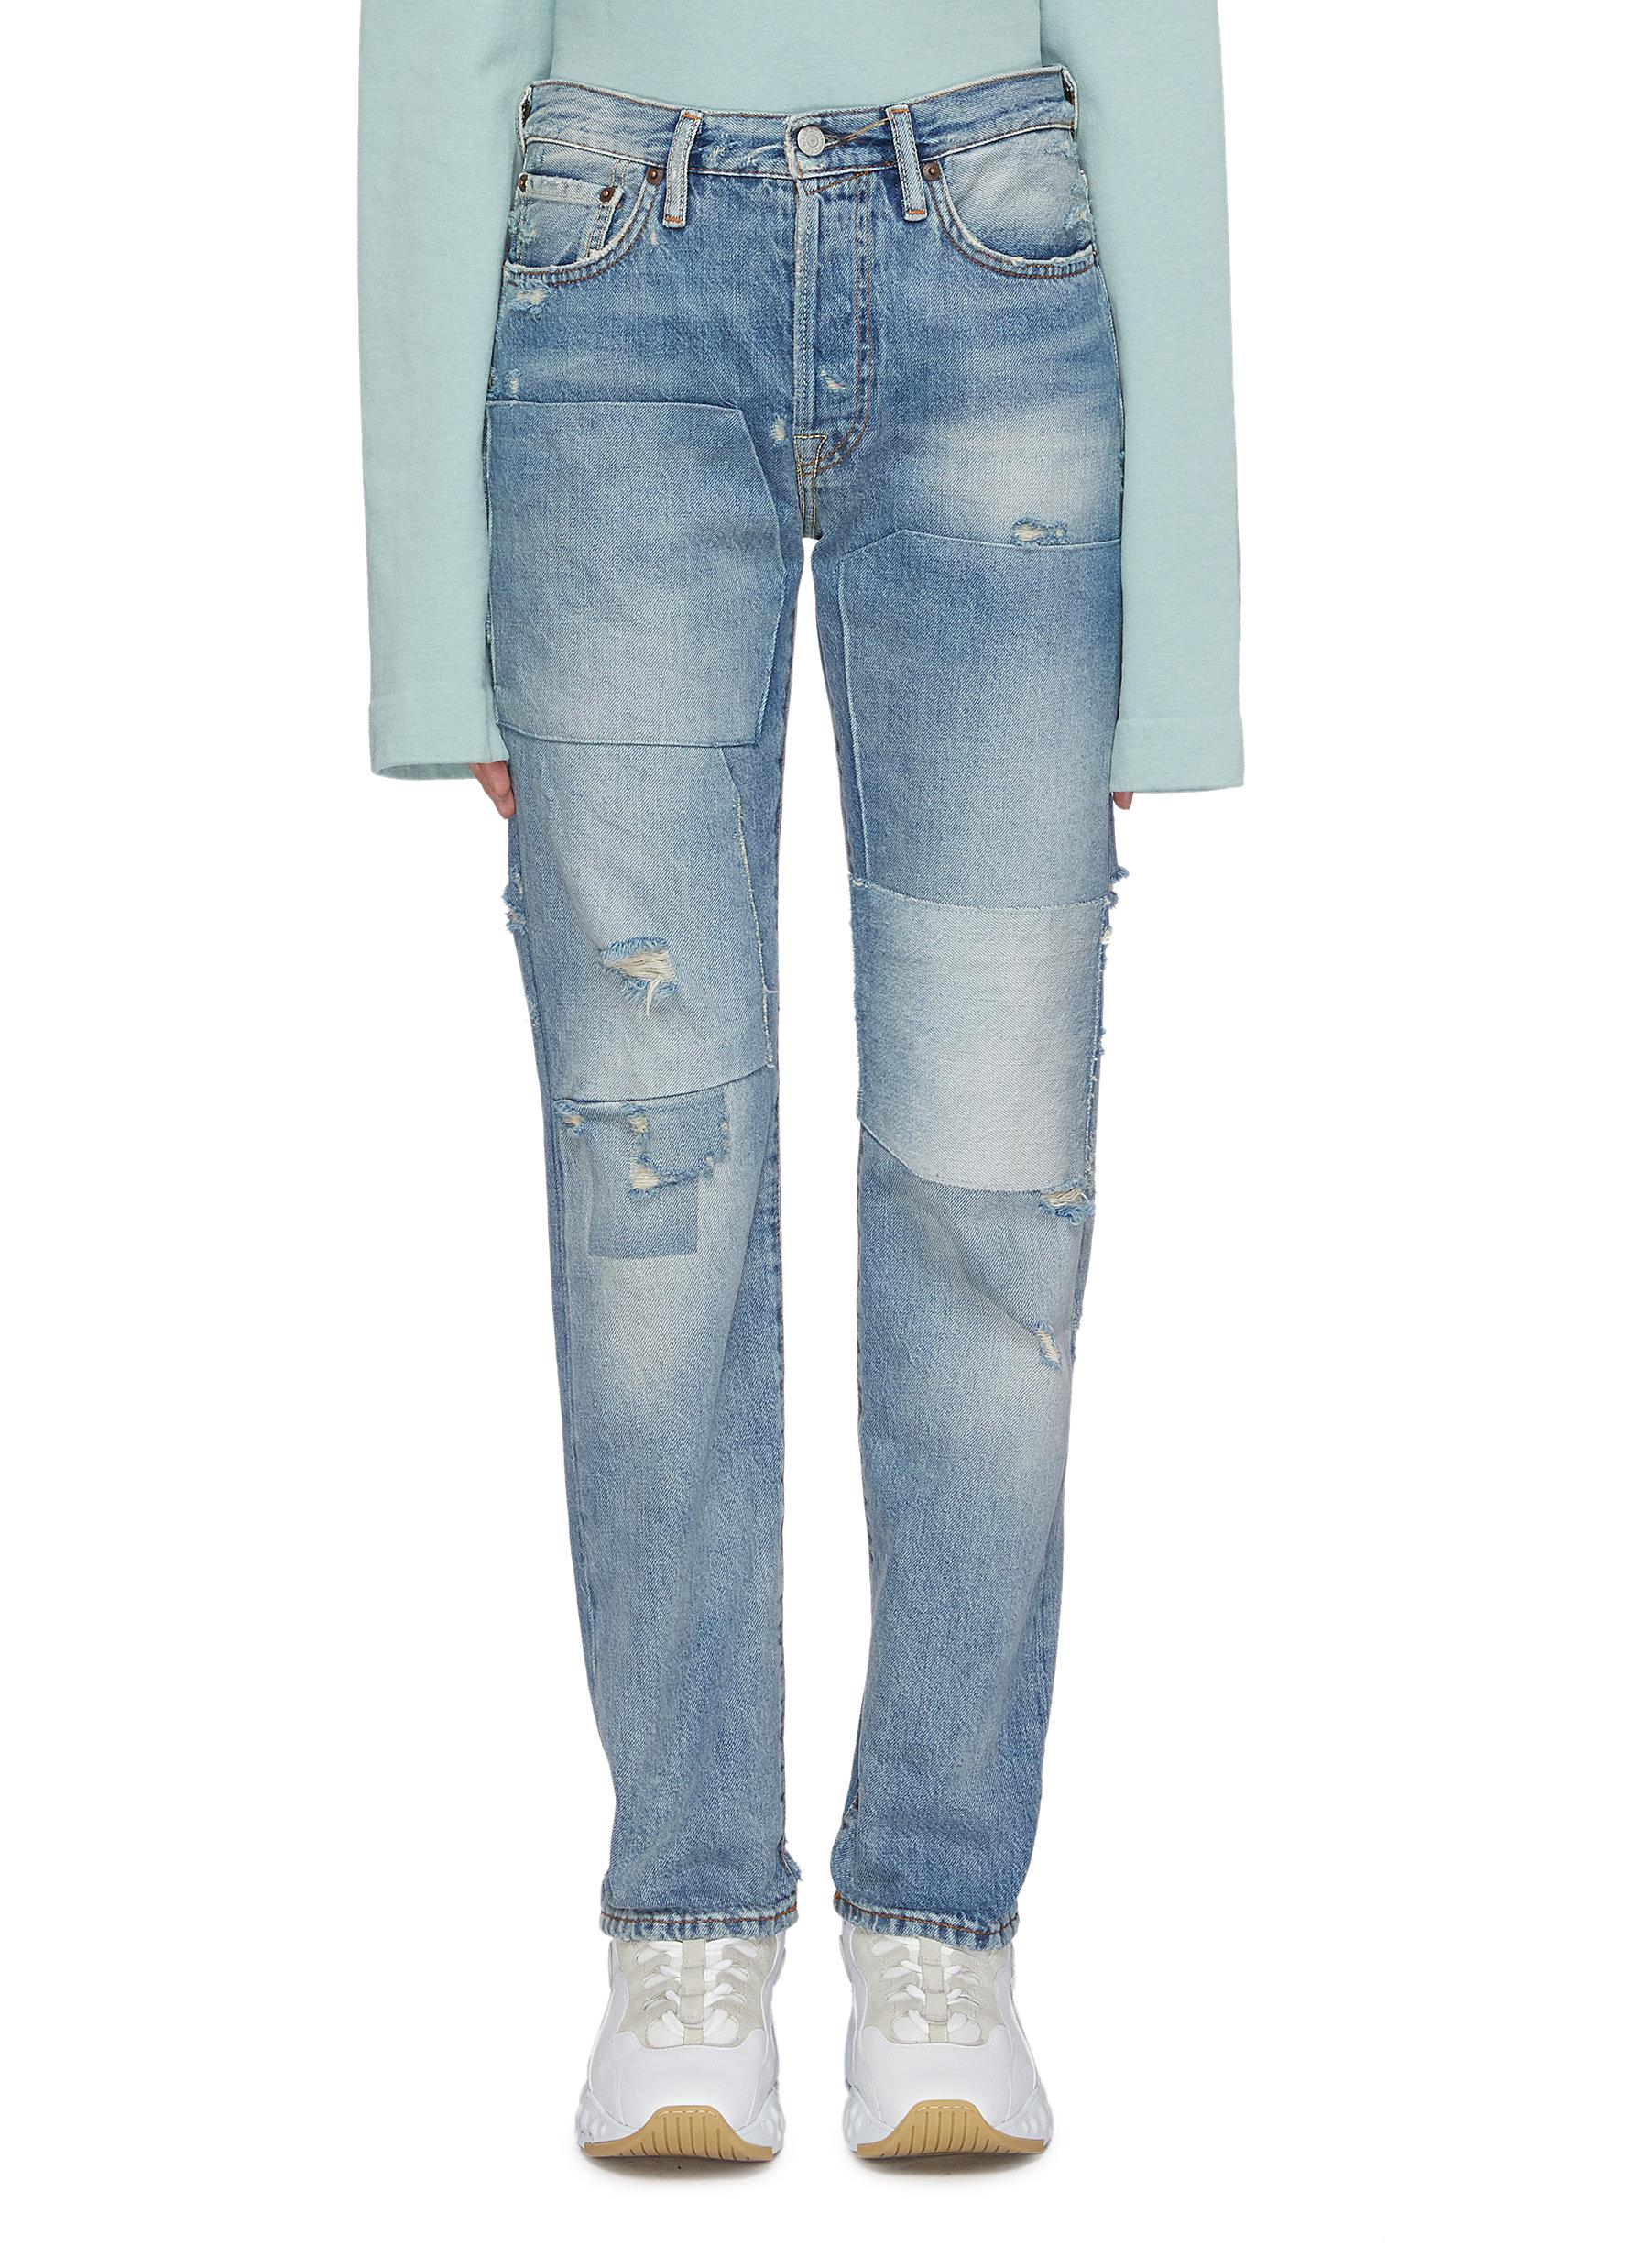 Patchwork distressed jeans by Acne Studios